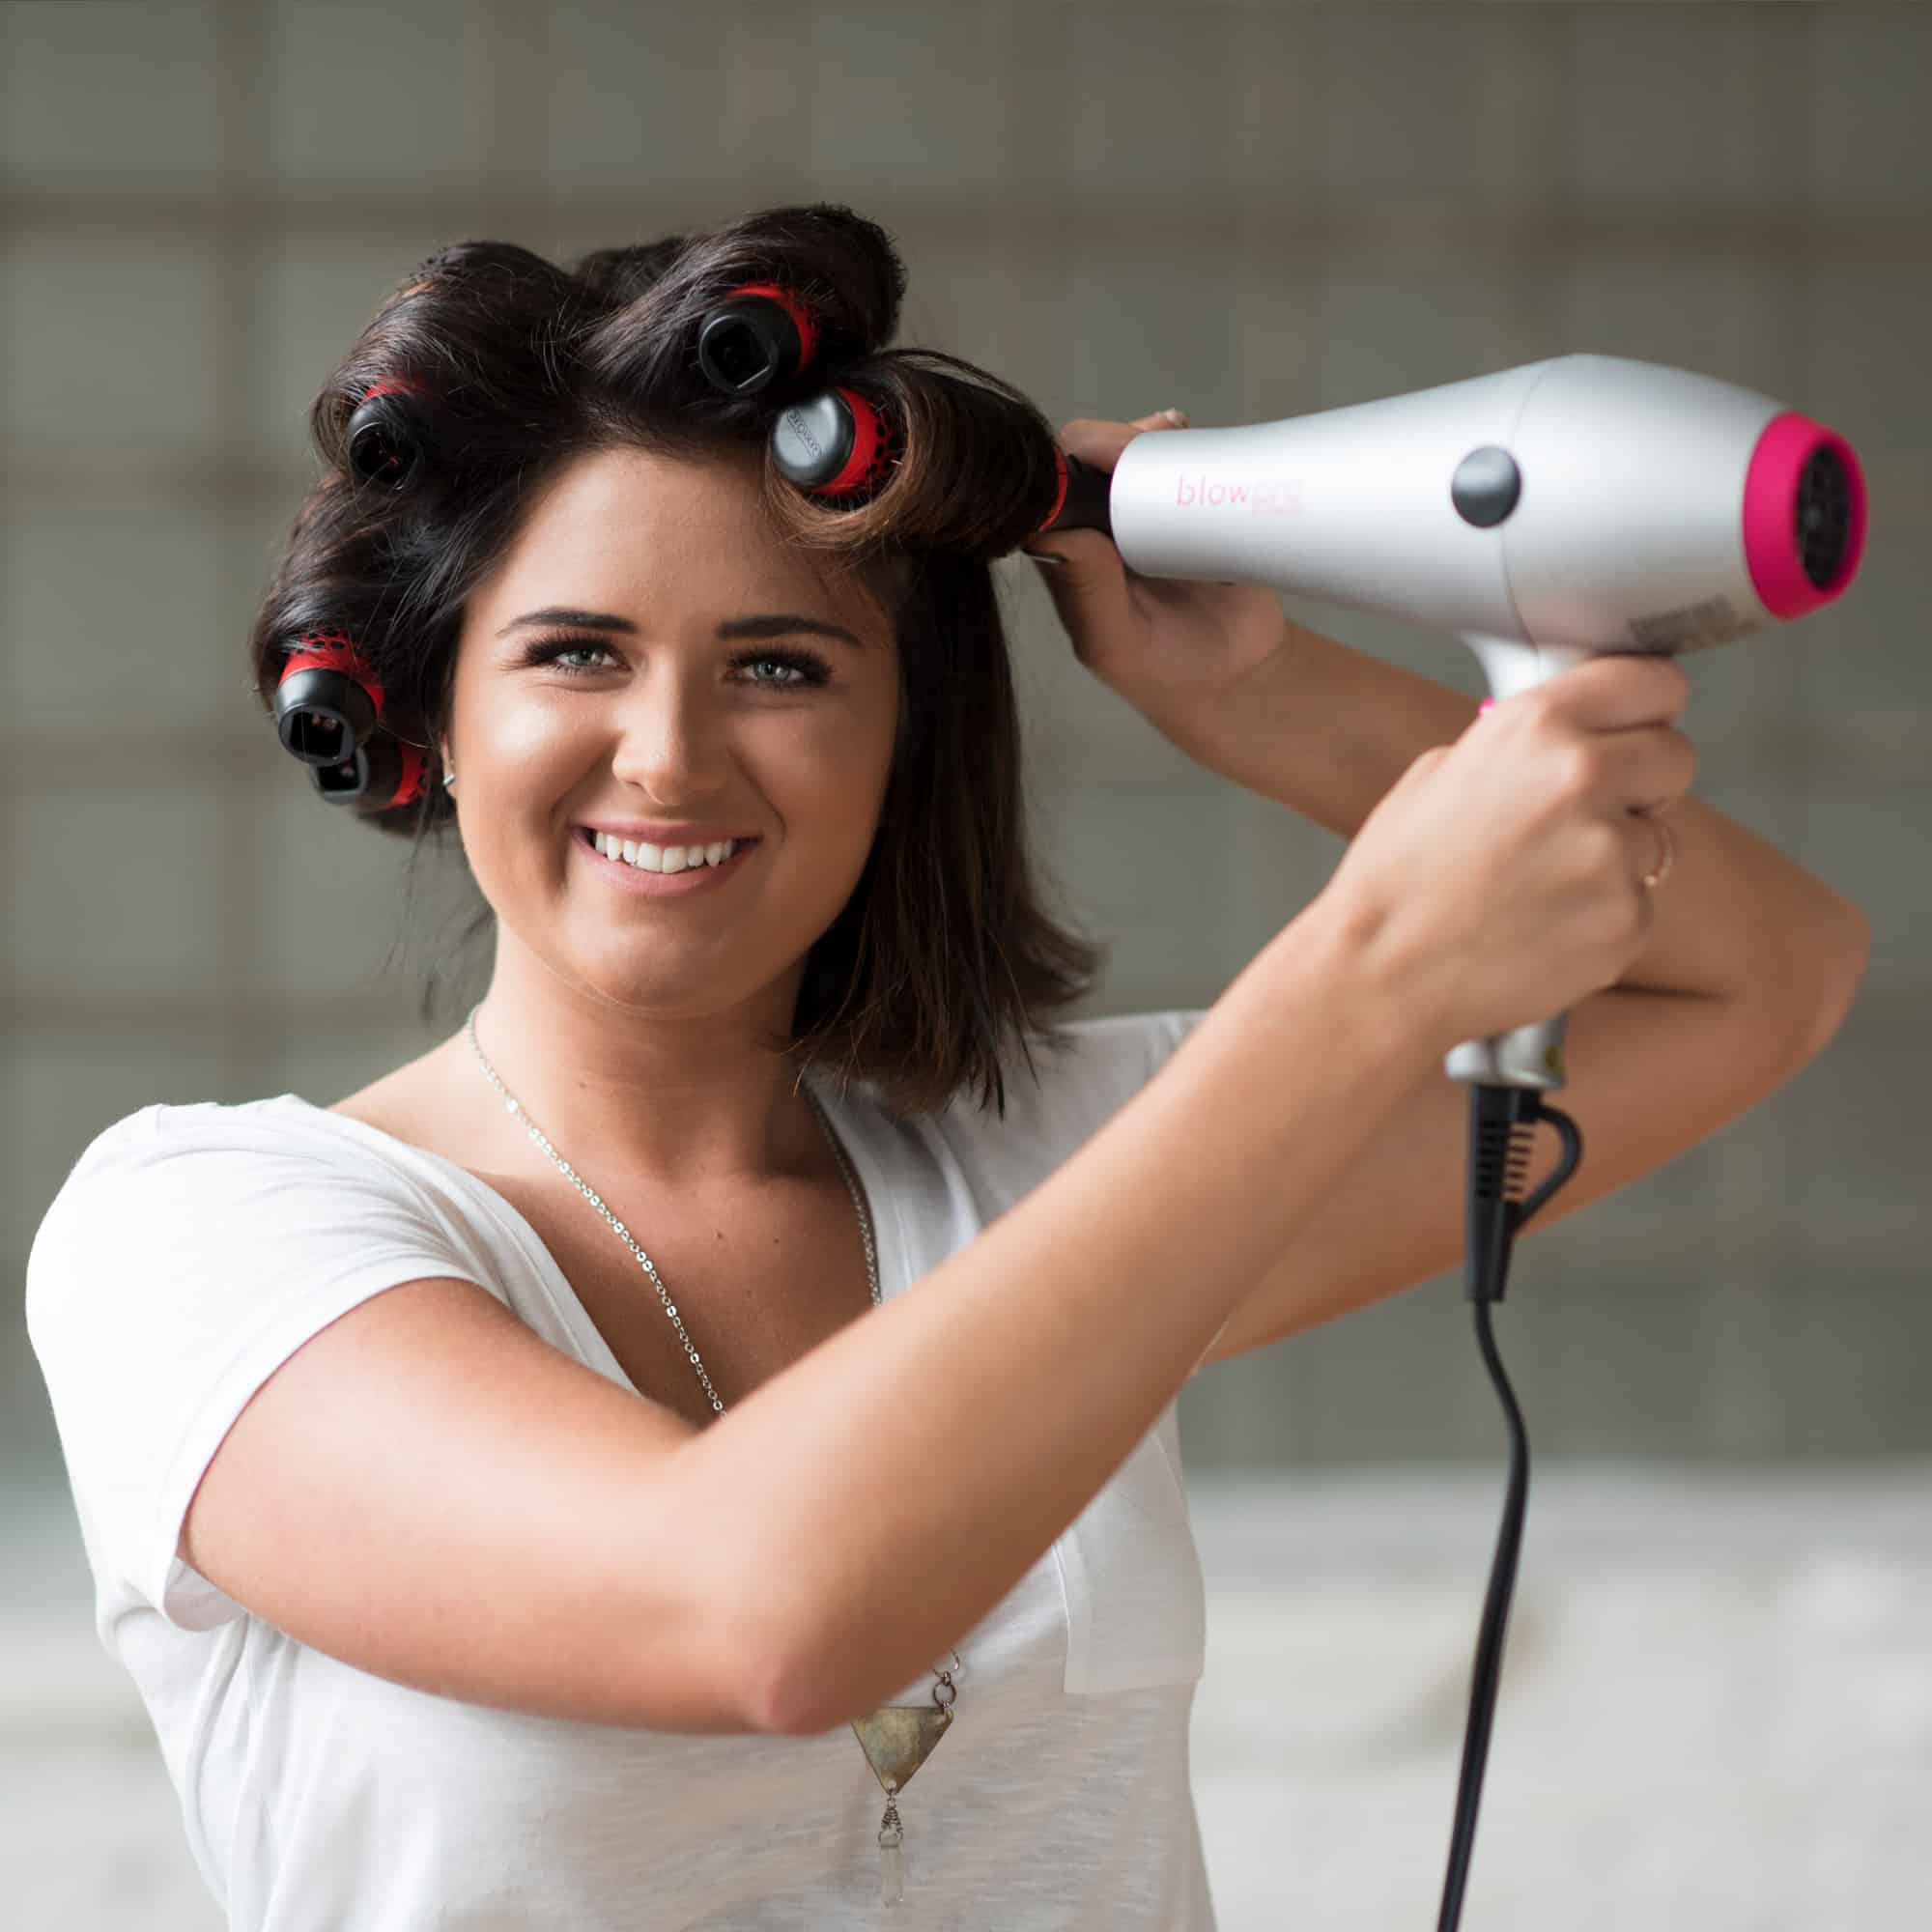 Model using Small Click n Curl Barrels while Hair-drying for an at home DIY Blowout style.